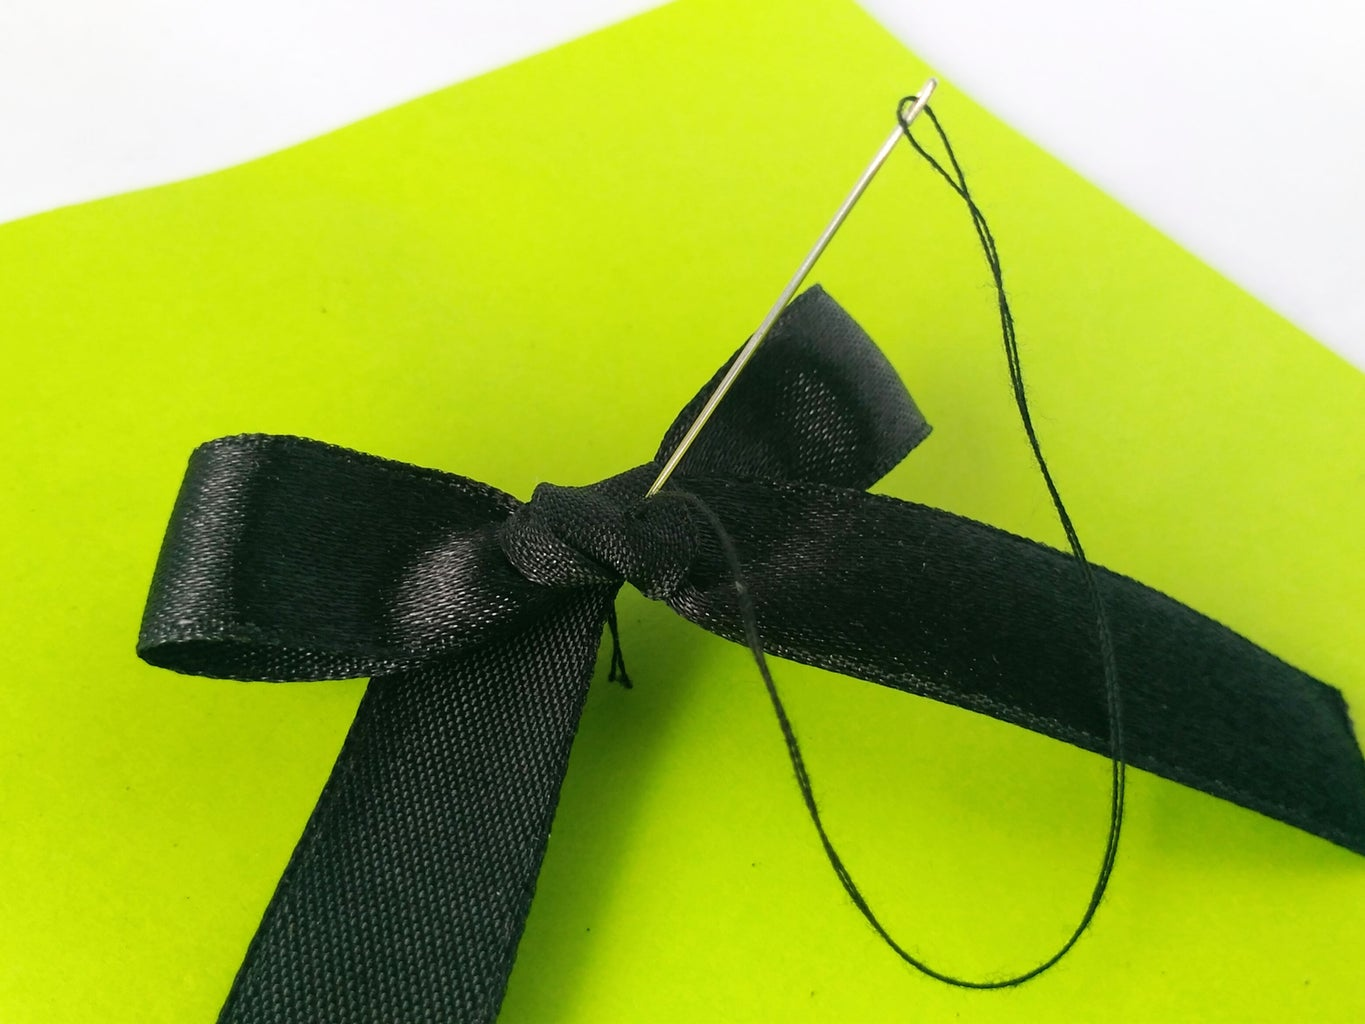 Prevent the Bow From Unraveling